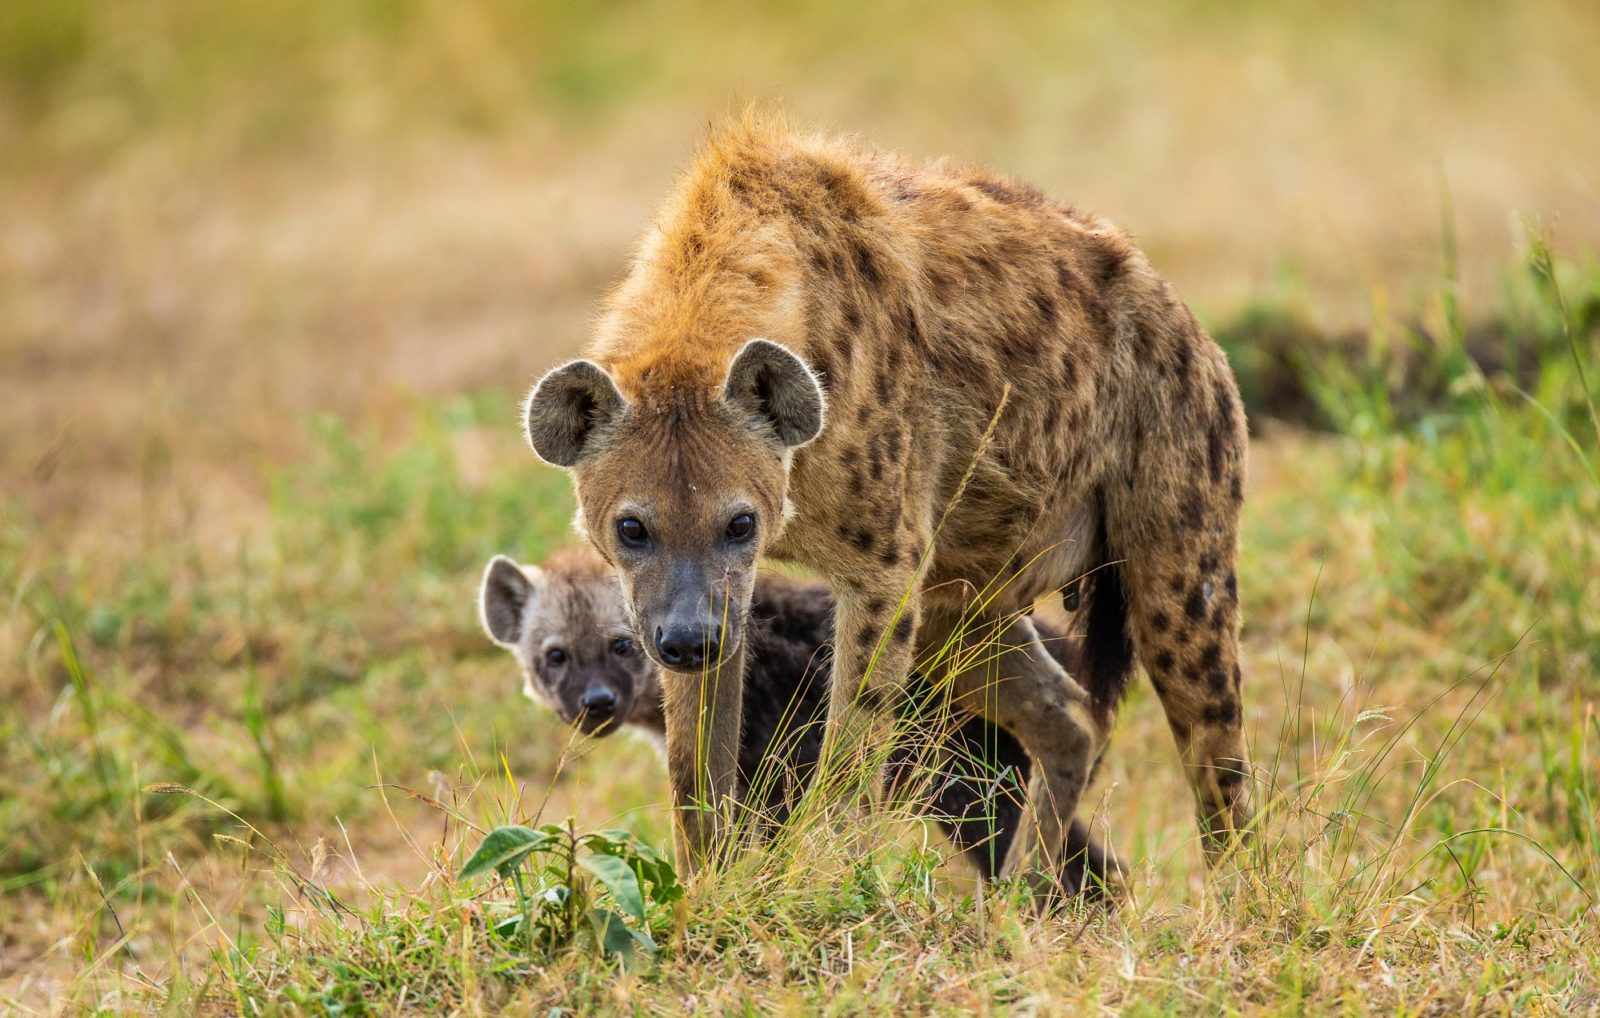 """Slobbery, Mangy Stupid Poachers!"" Do Hyenas Really Deserve Their Bad Rap?"